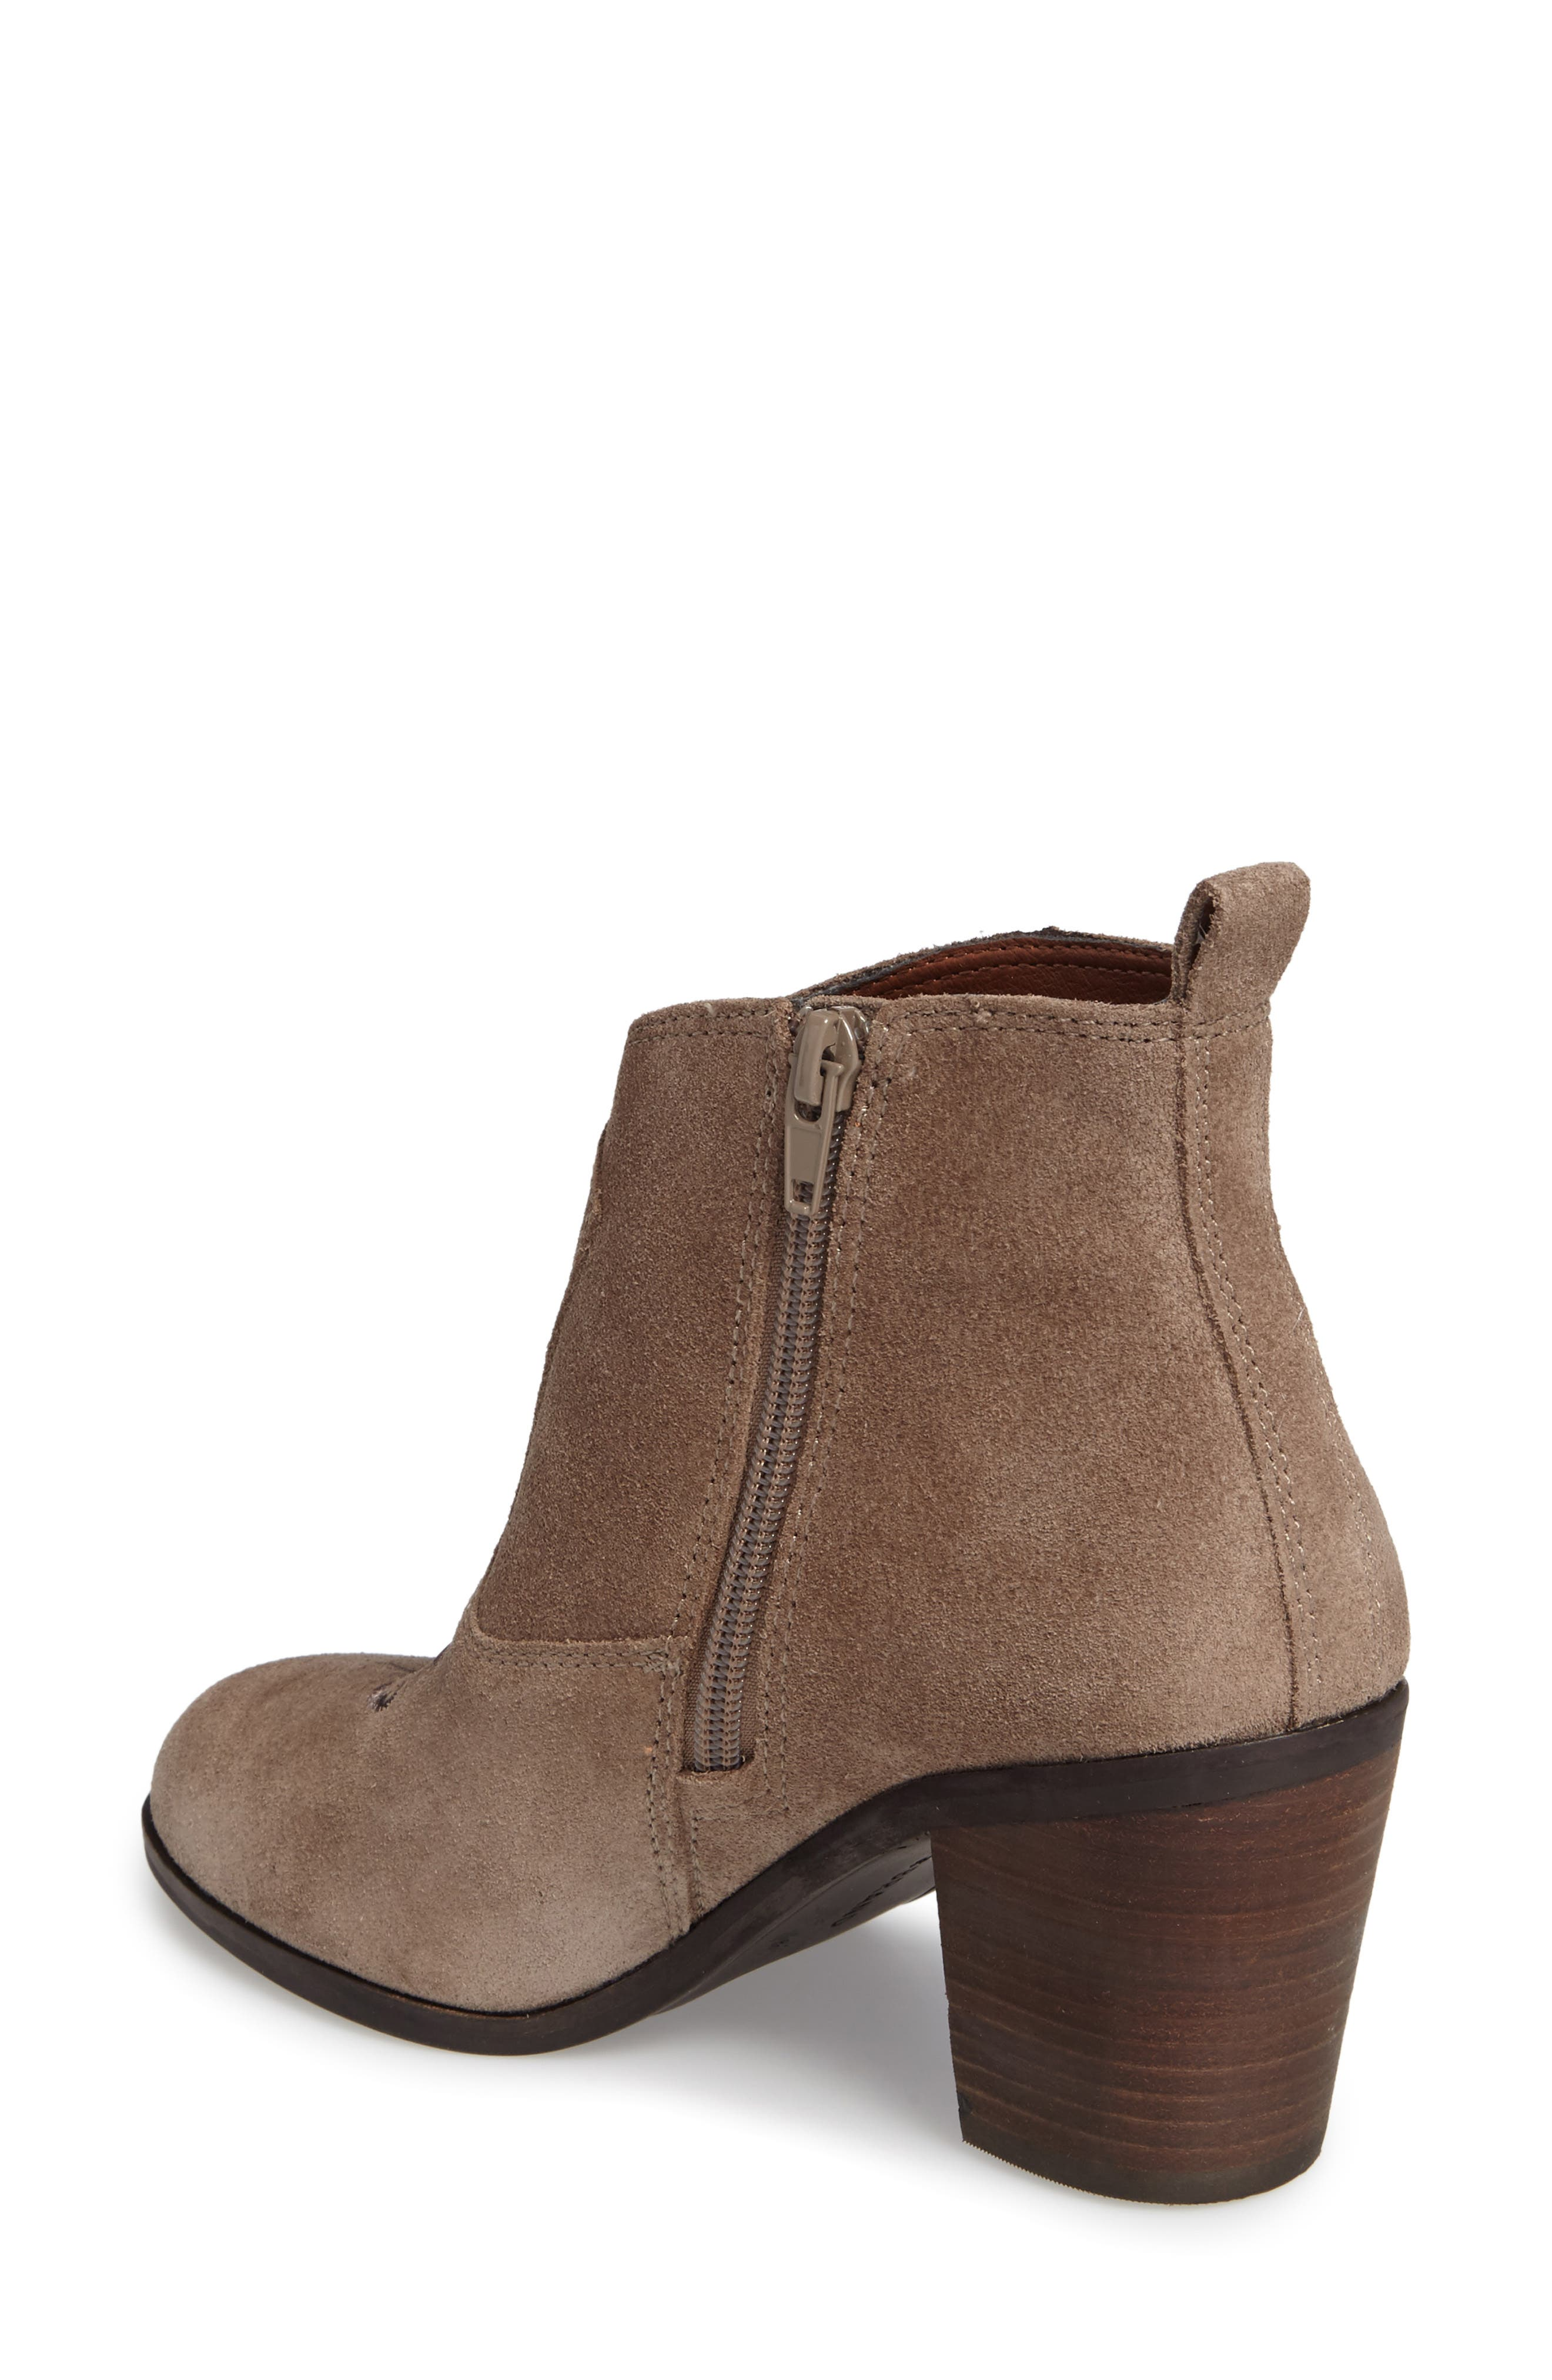 Pexton Embroidered Bootie,                             Alternate thumbnail 6, color,